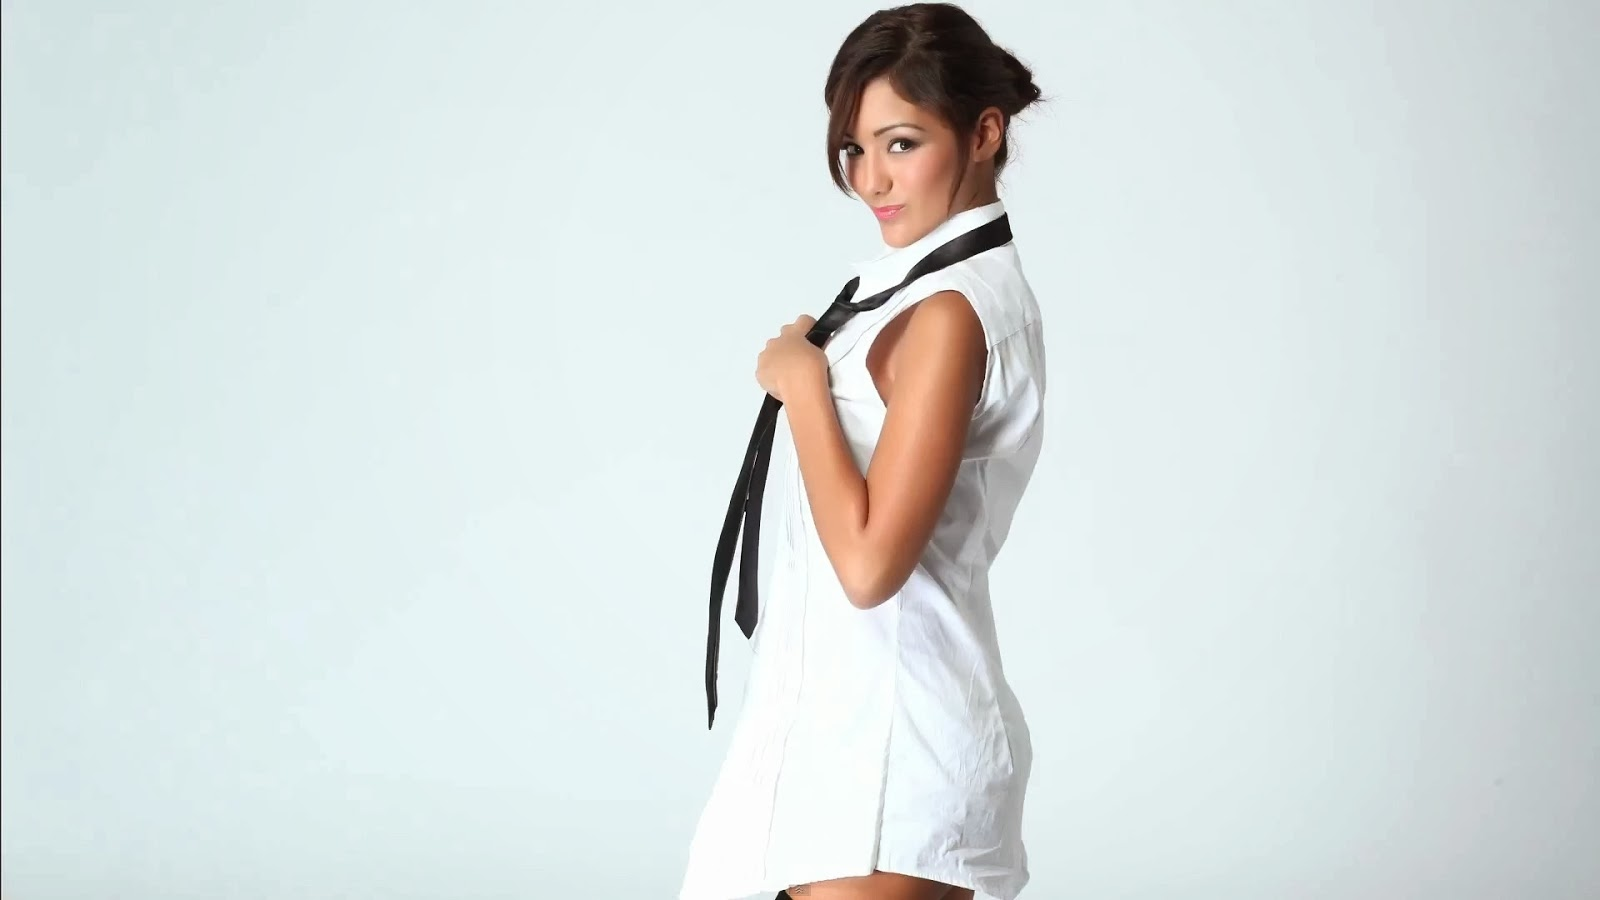 brunettes melanie iglesias hot wallpapers hd wallpapers